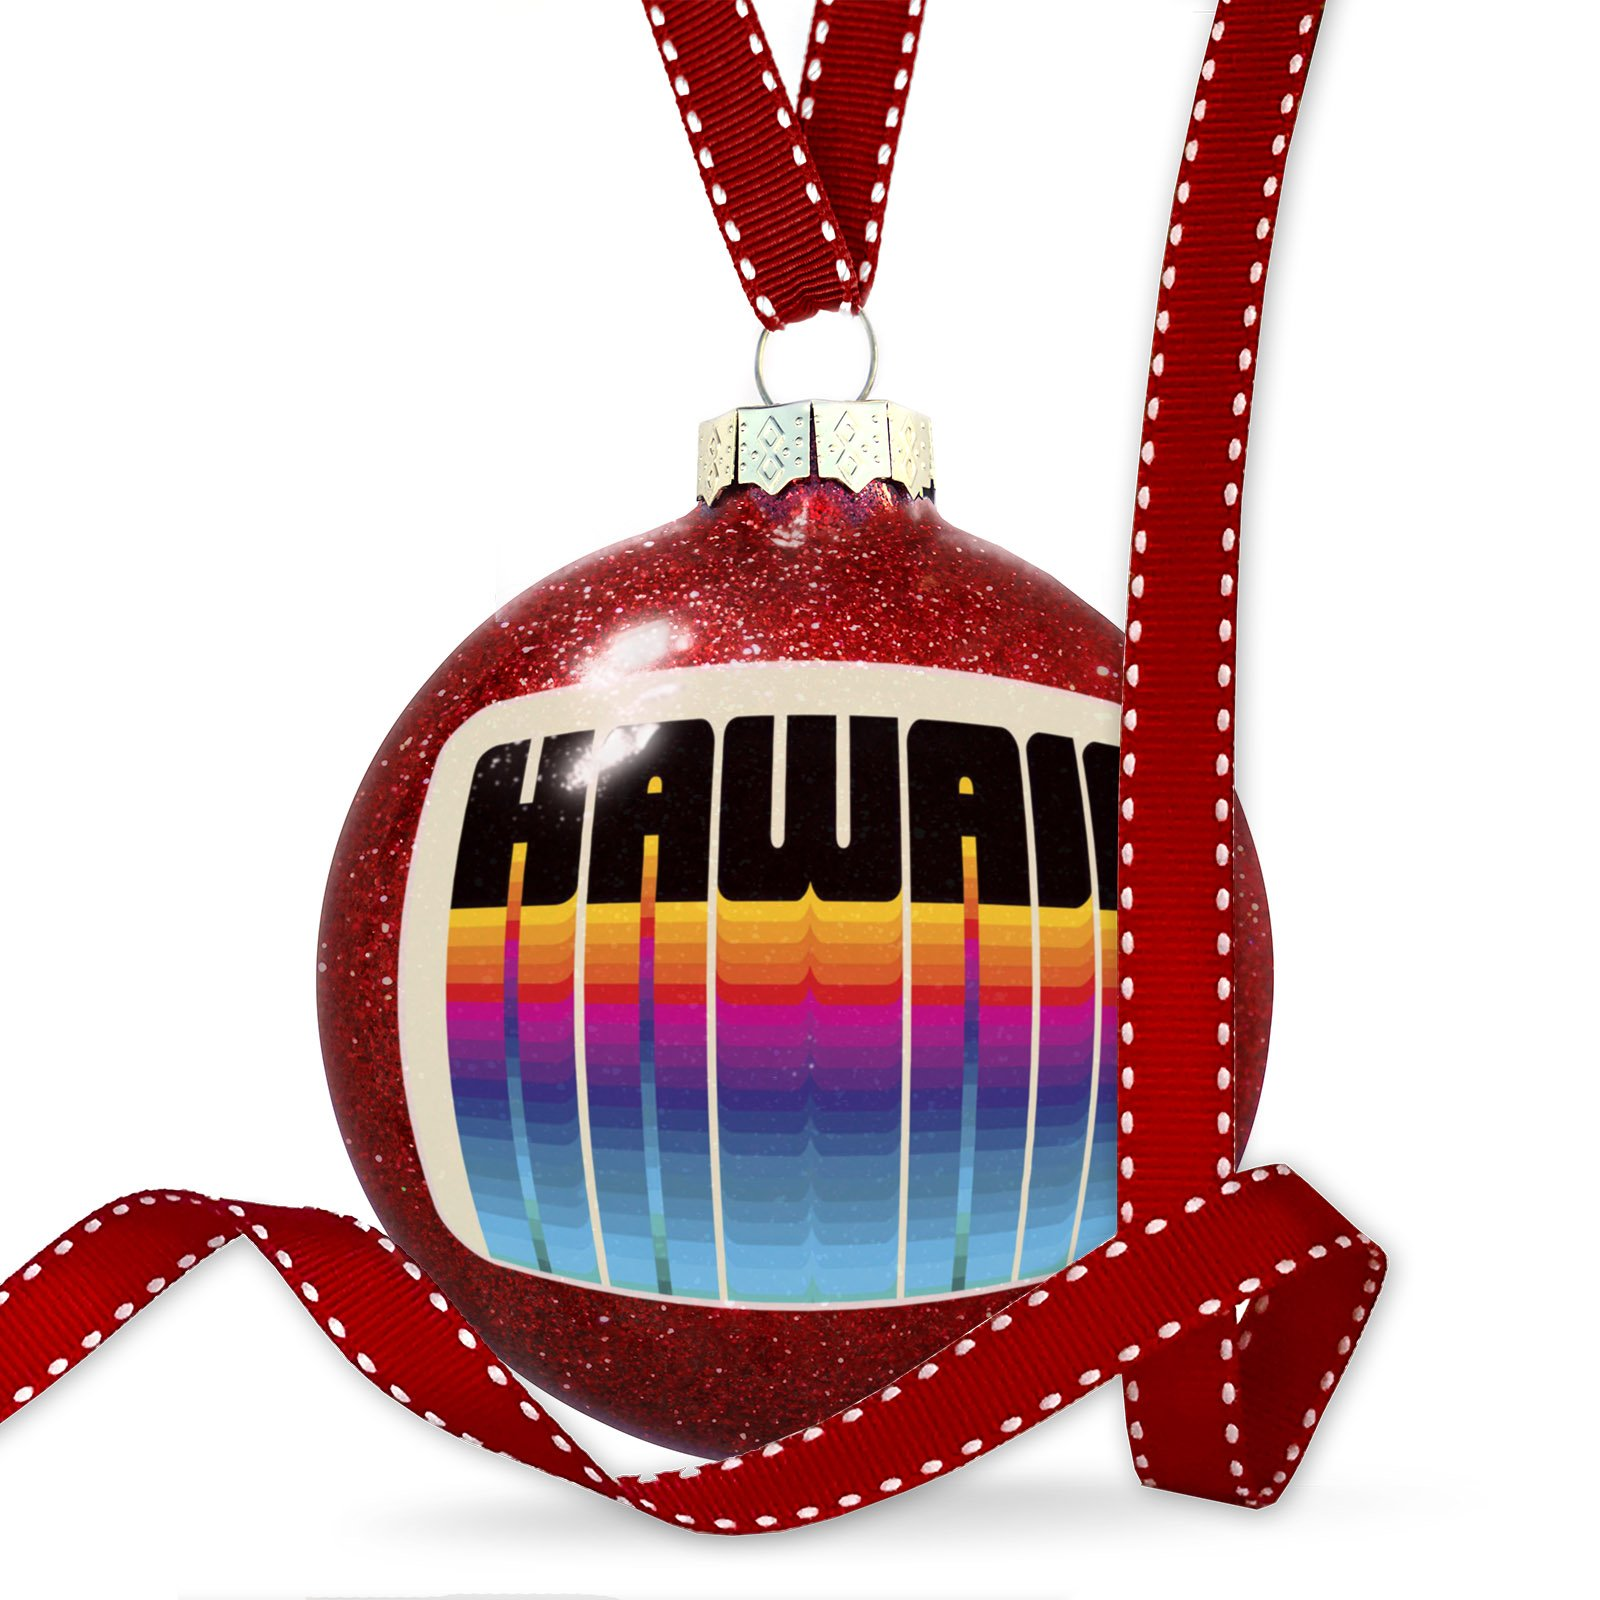 Christmas Decoration Retro Cites States Countries Hawaii Ornament